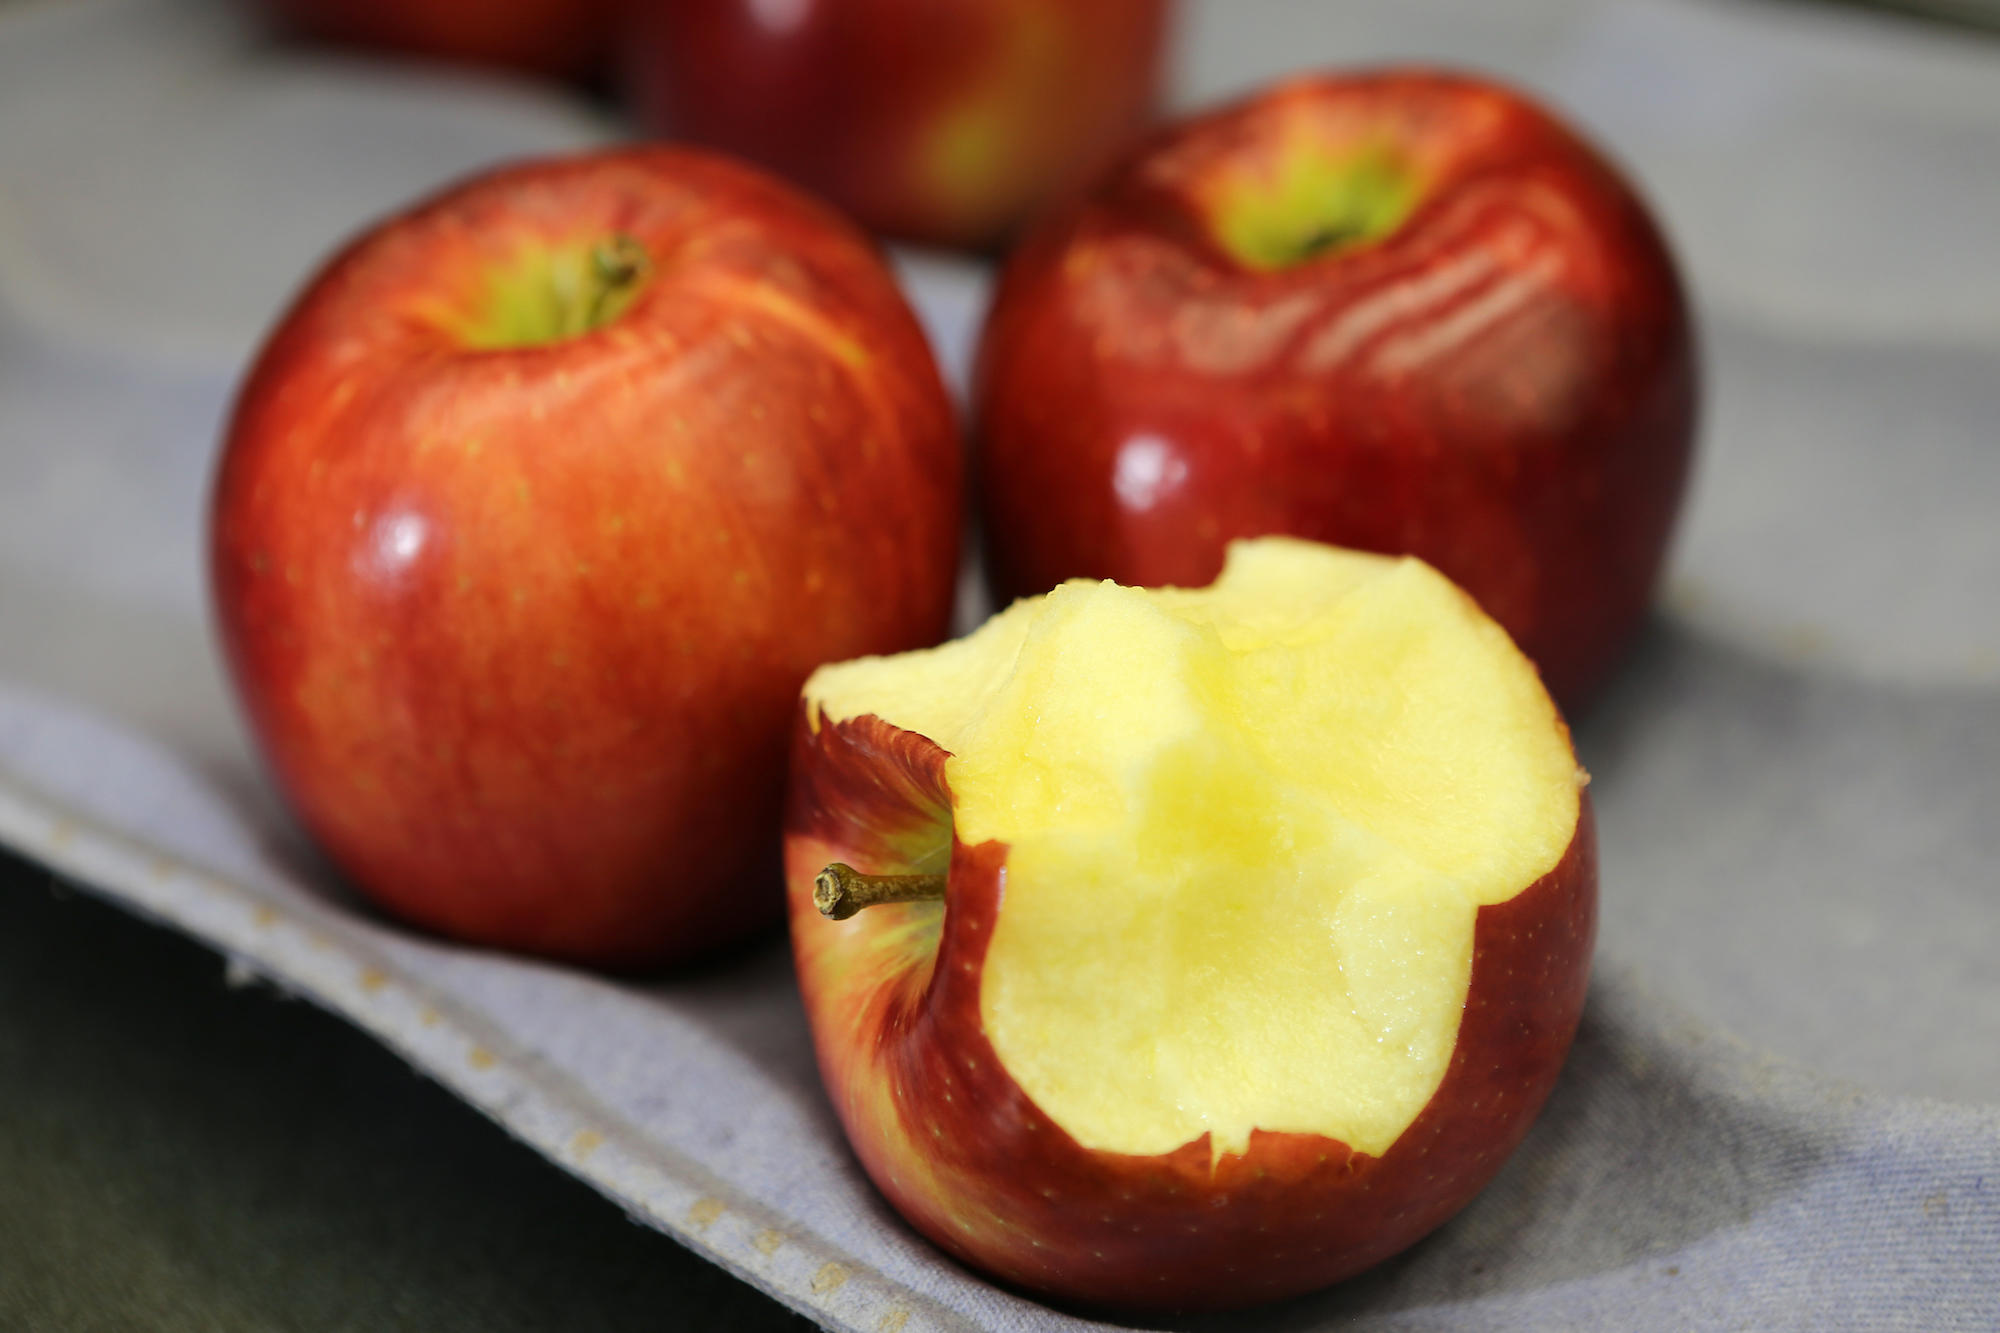 Washington's new apple could be an industry game-changer